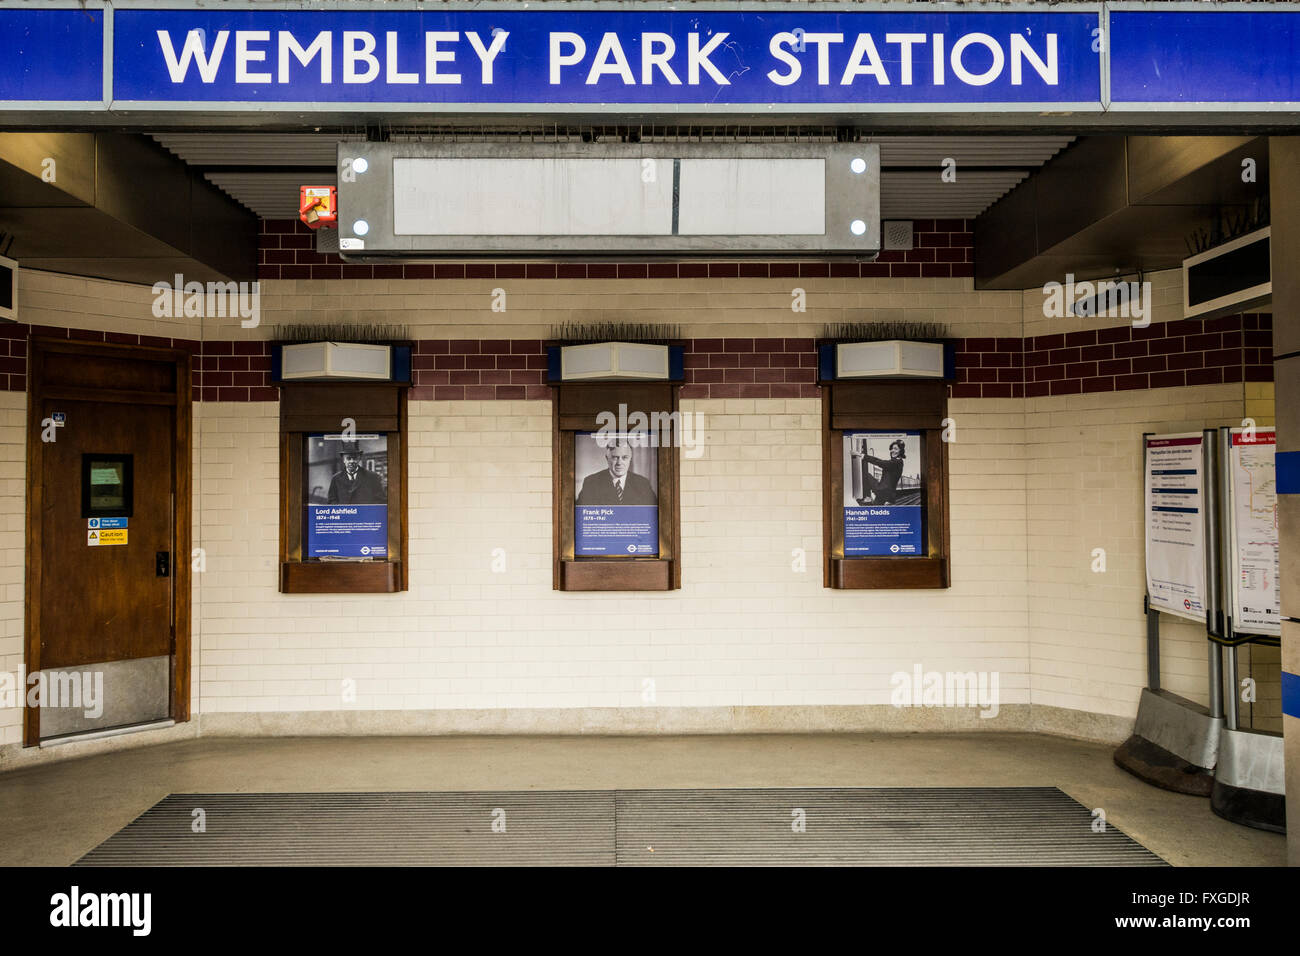 Closed ticket offices at Wembley Park Station in London, UK - Stock Image